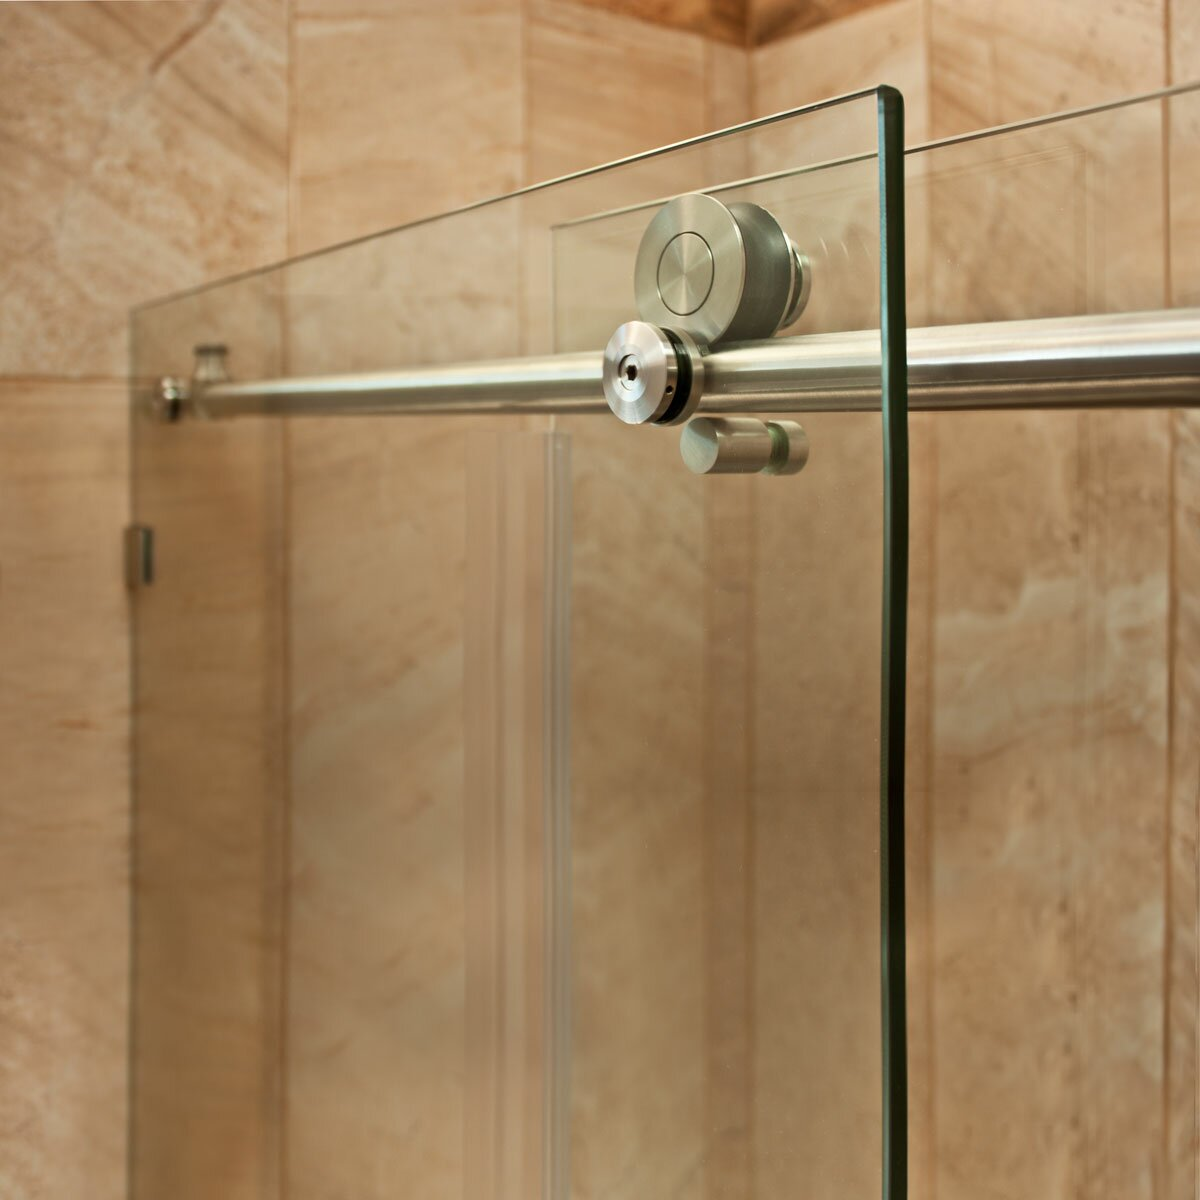 Lesscare Ultra C 48 X 76 Single Sliding Shower Door